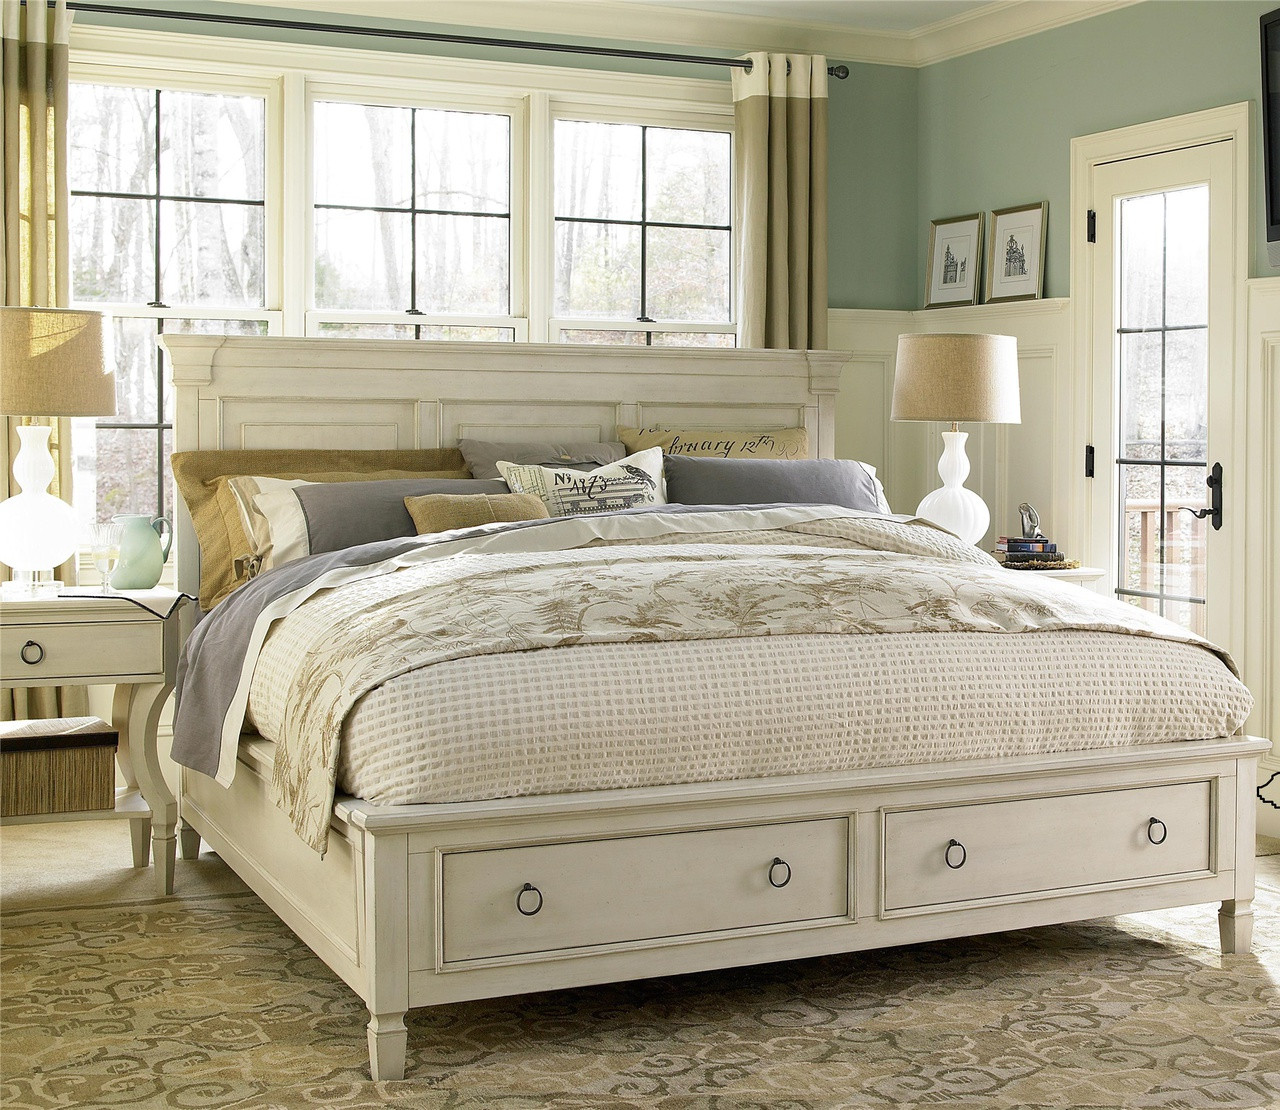 Country-chic Wood Queen Size White Storage Bed Zin Home